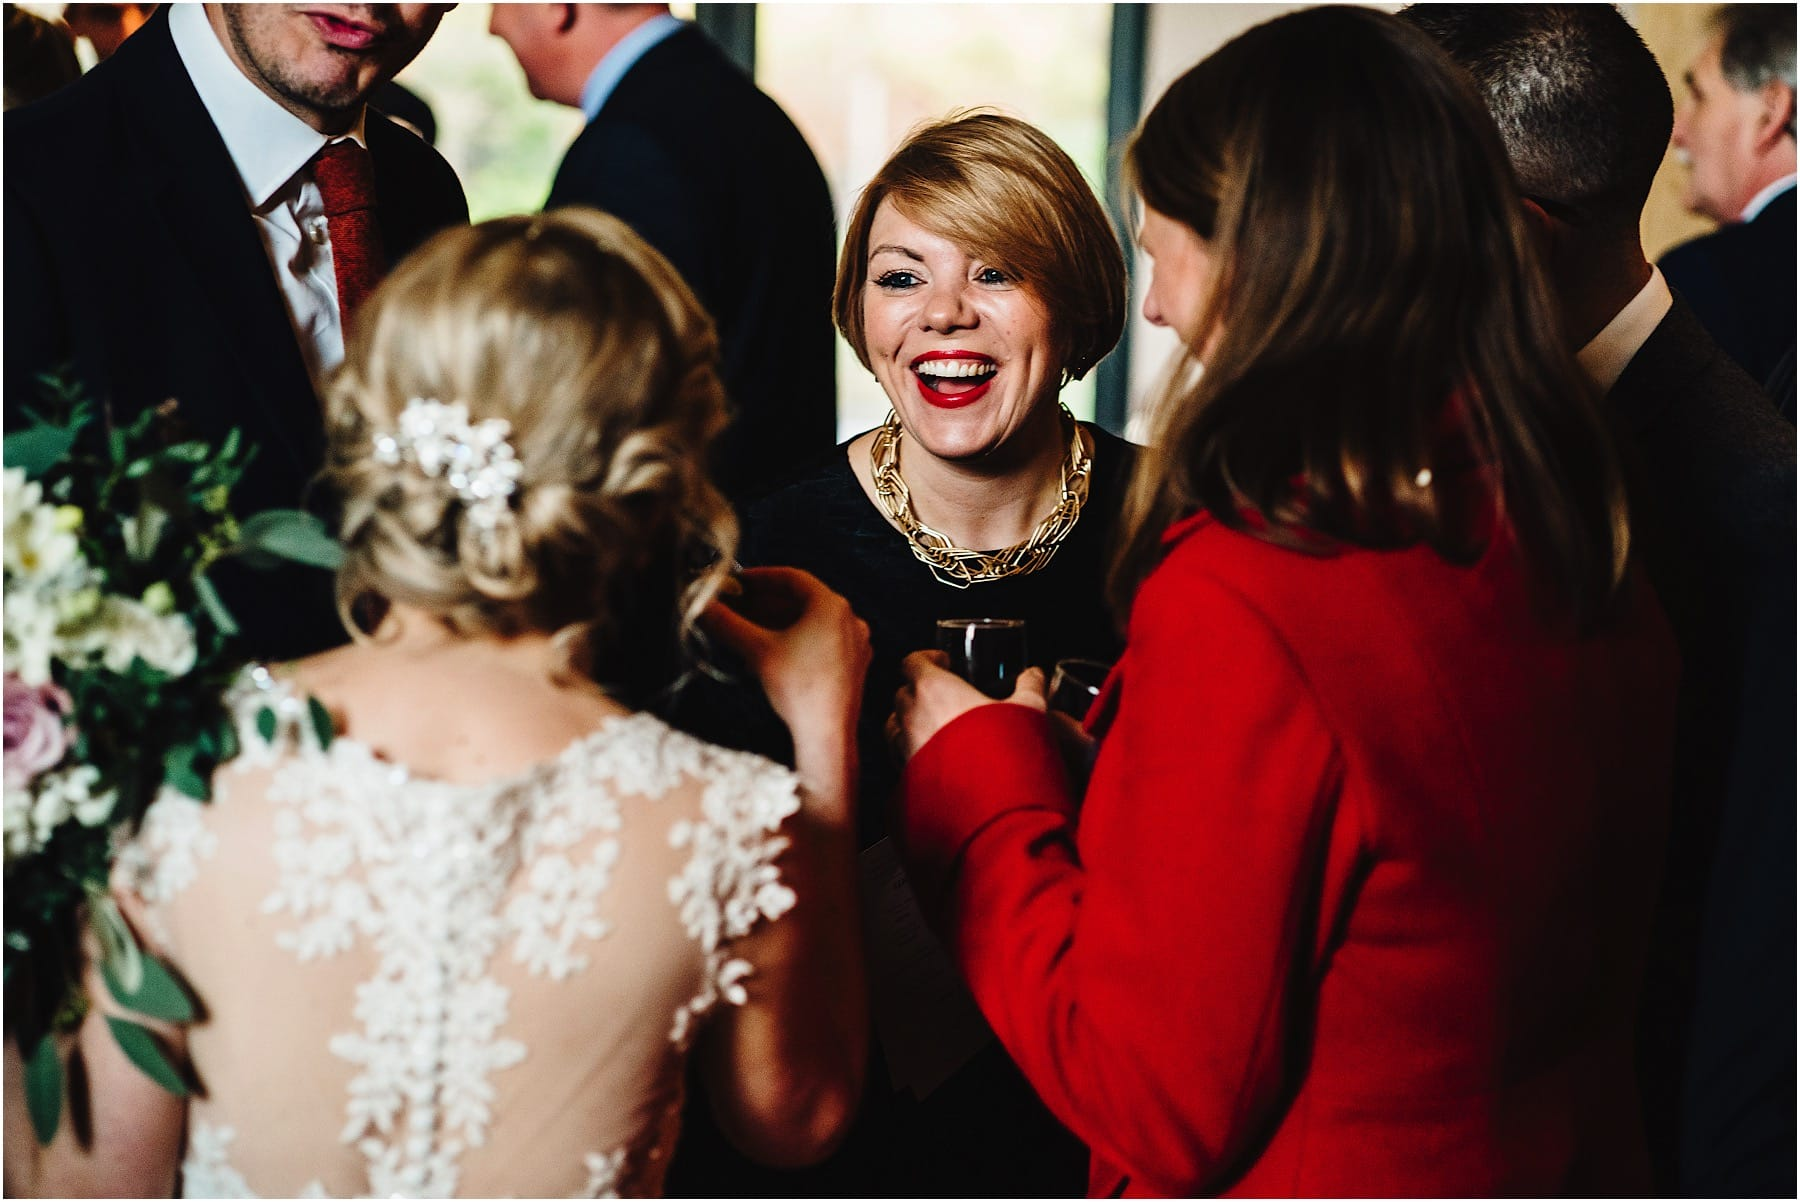 wedding guest laughing during drinks reception